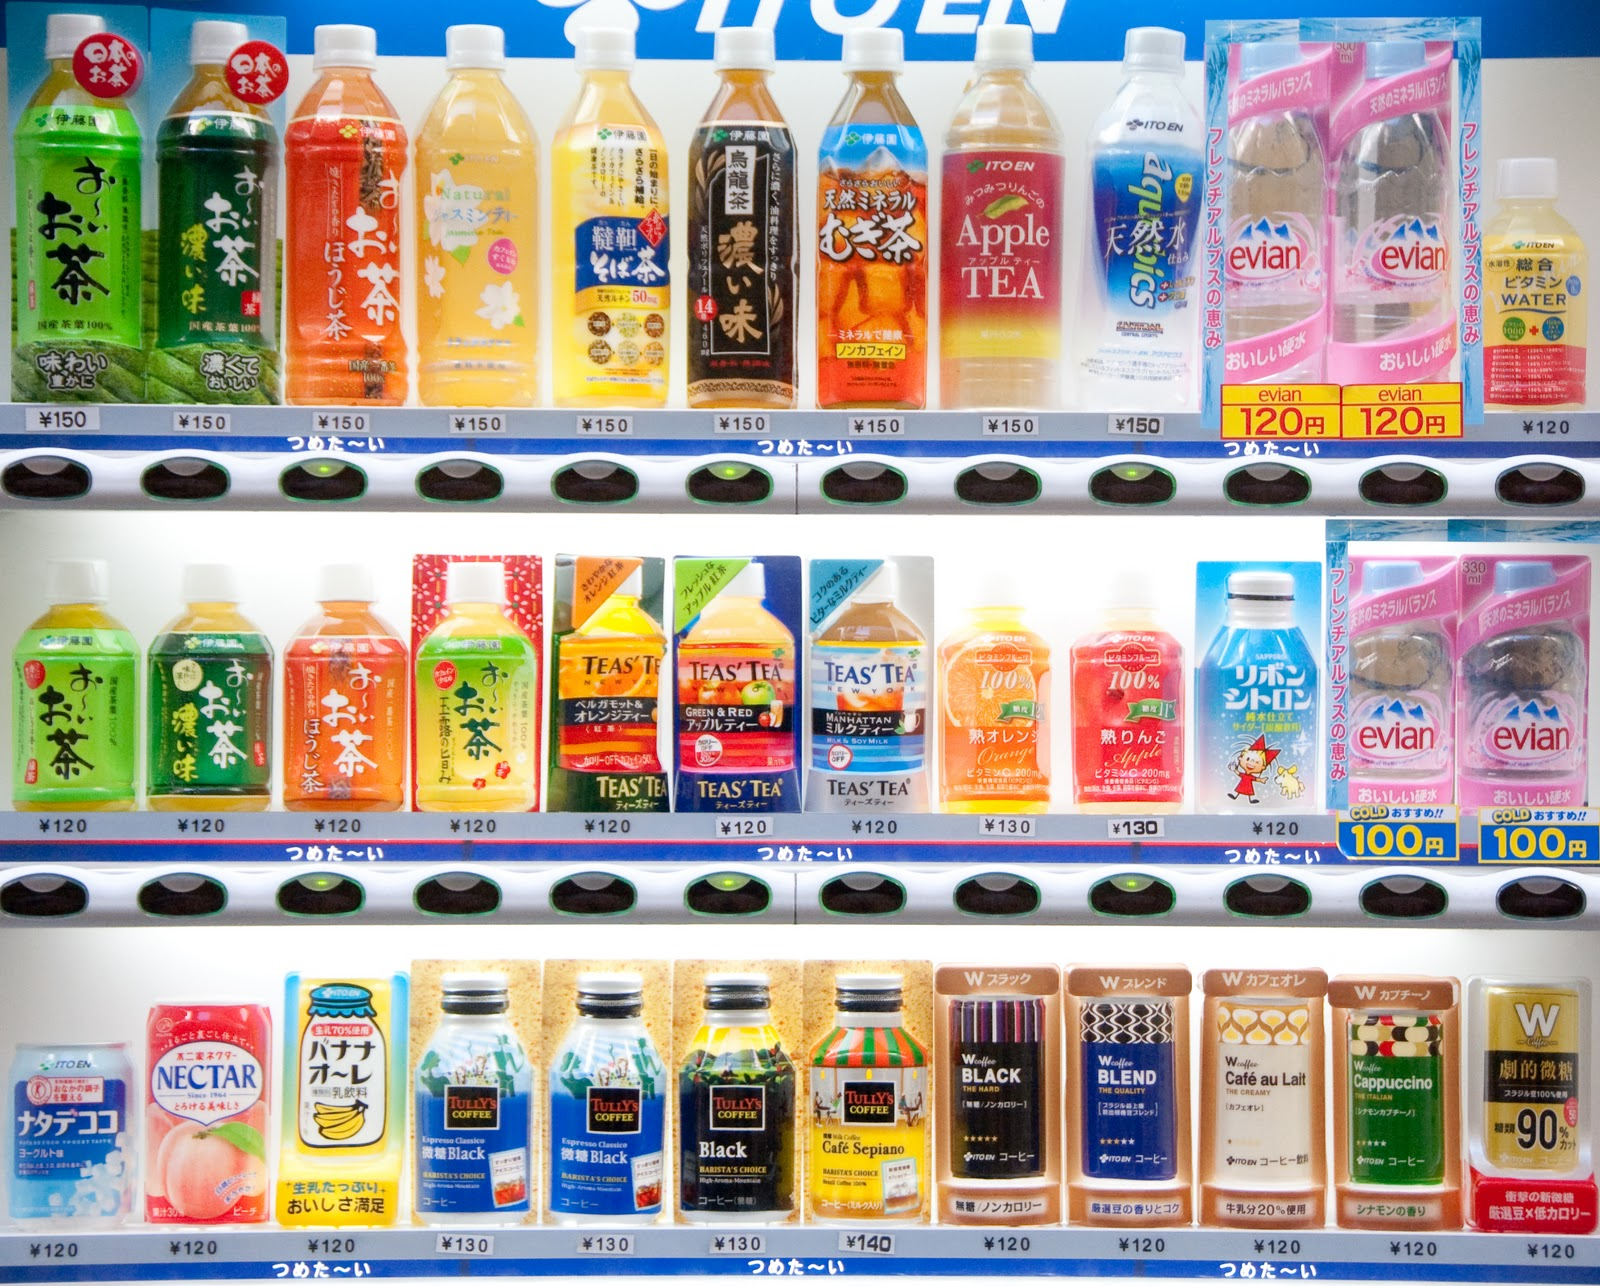 Japan-6-vending machine.jpg